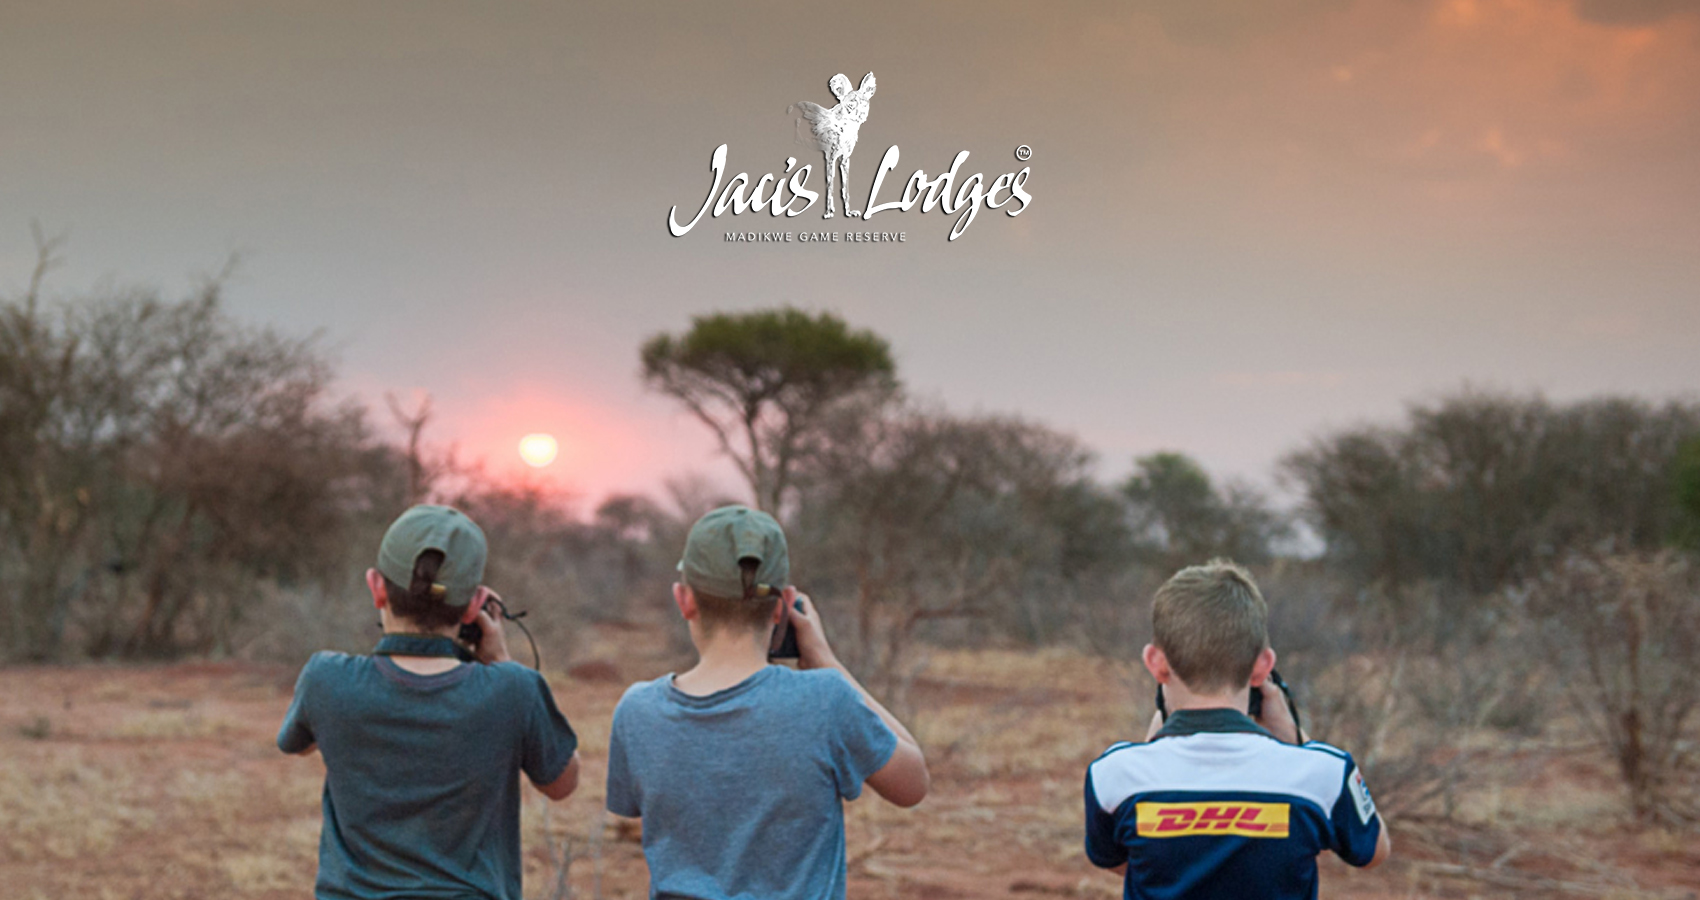 Jacis_Lodges–Child_Stays_Free-Specials-Product-Page